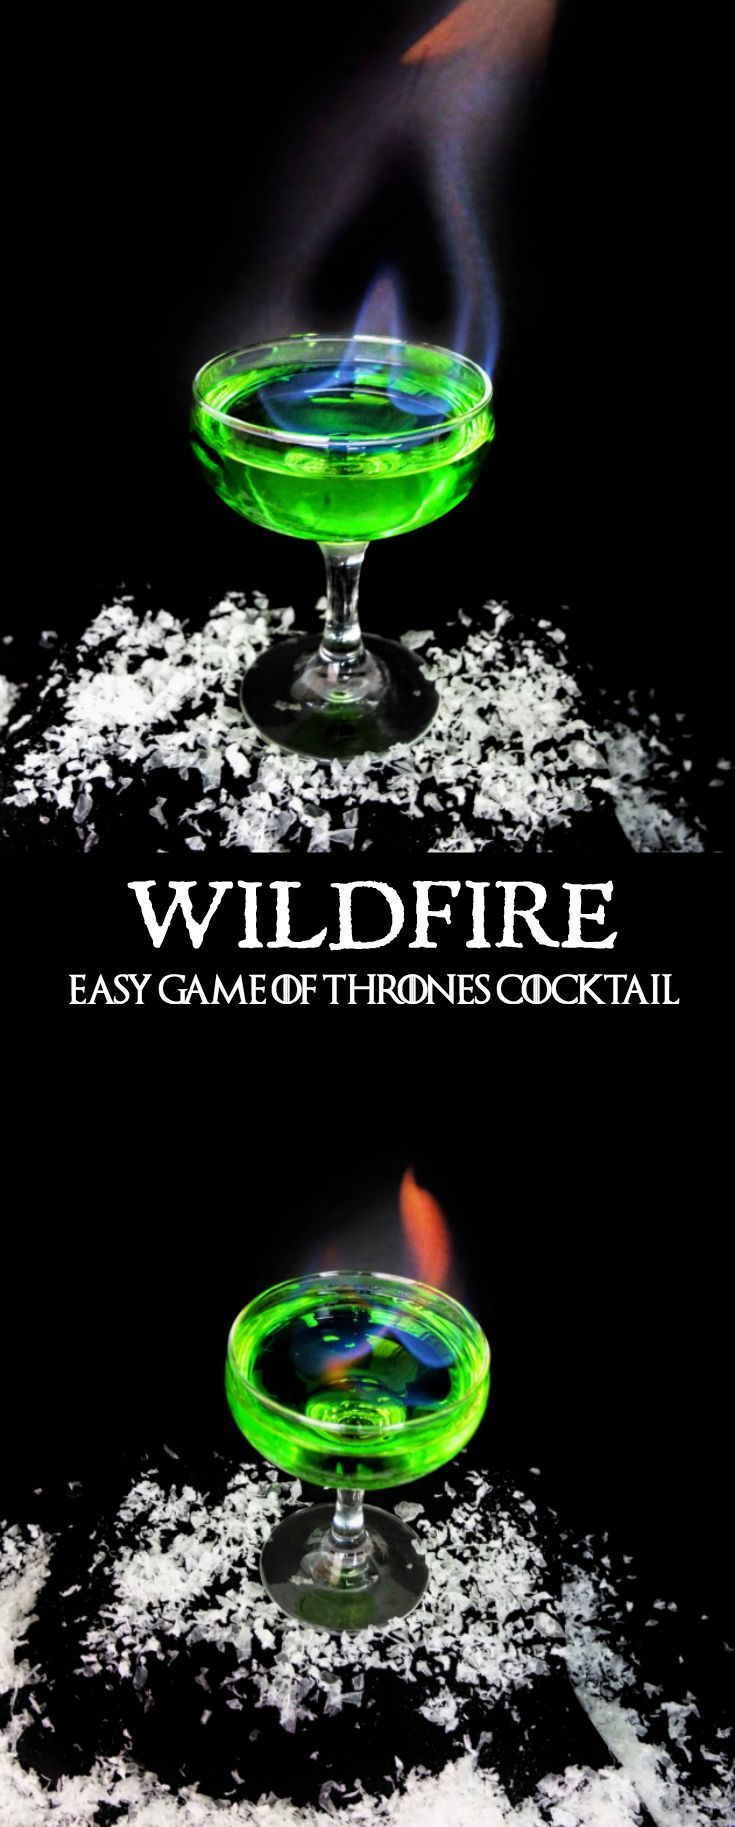 A flaming Game of Thrones inspired cocktail for your next Game of Thrones viewing party! Inspired by the green explosive Wildfire used in the show. This easy Game of Thrones cocktail is caught fire with Bacardi 151 rum and sweetened by using a mix of Midori and Watermelon Vodka to make a melon martini so good you might explode. // www.elletalk.com